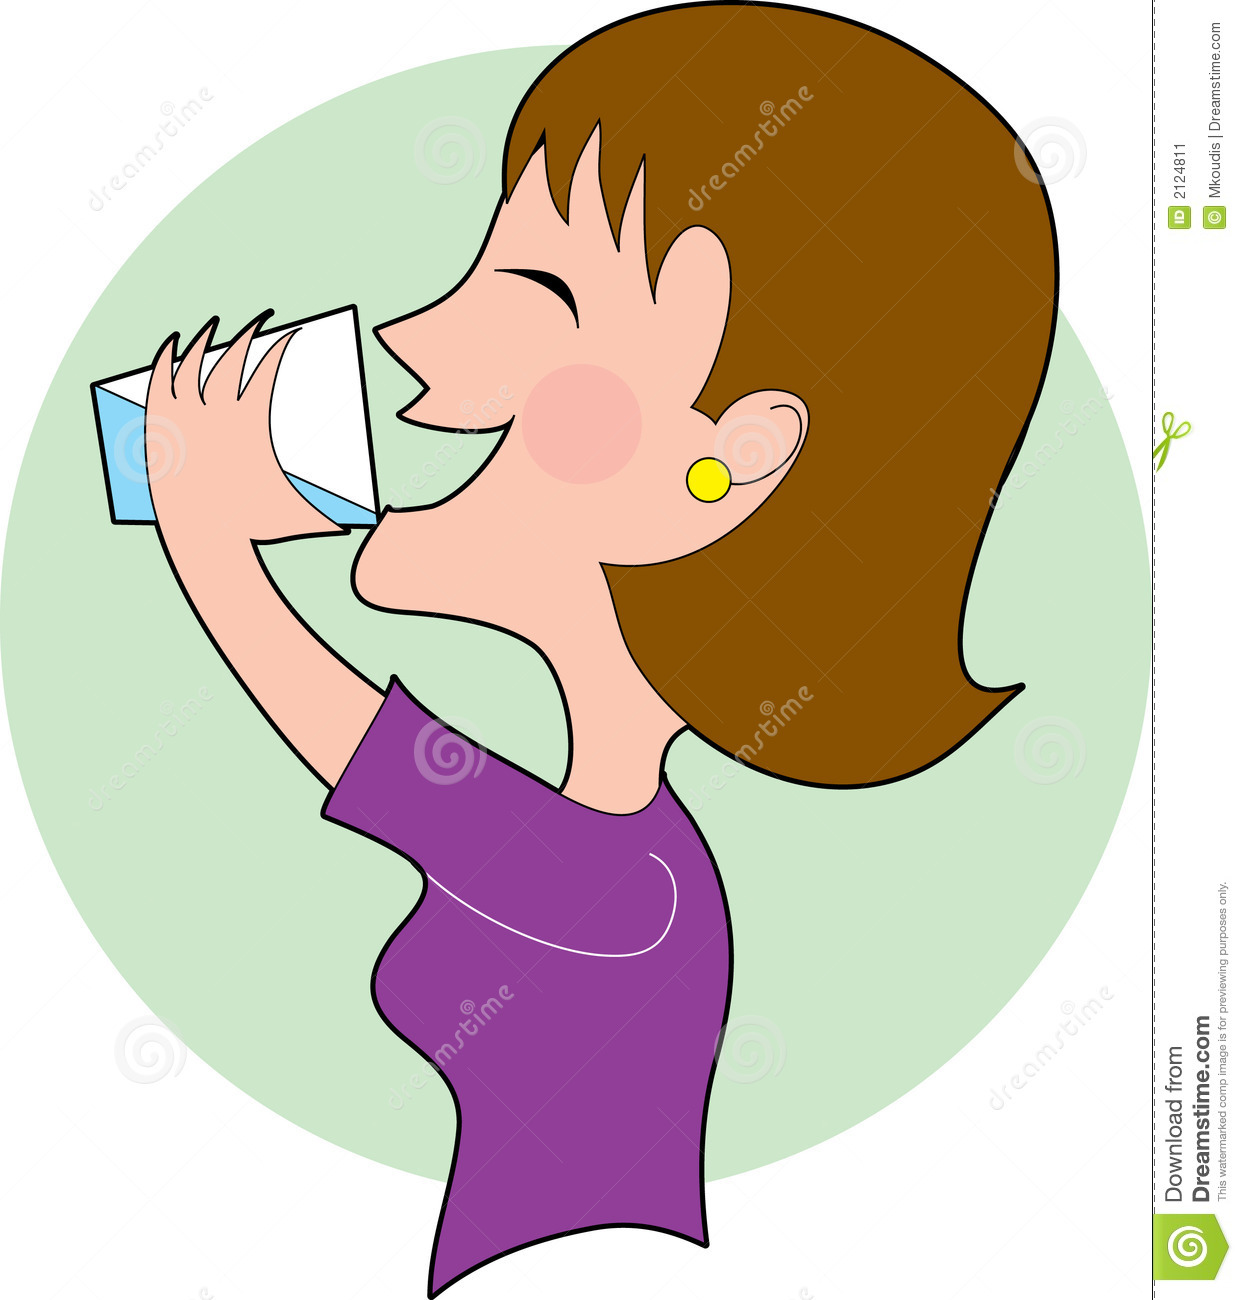 drinking clipart-drinking clipart-3